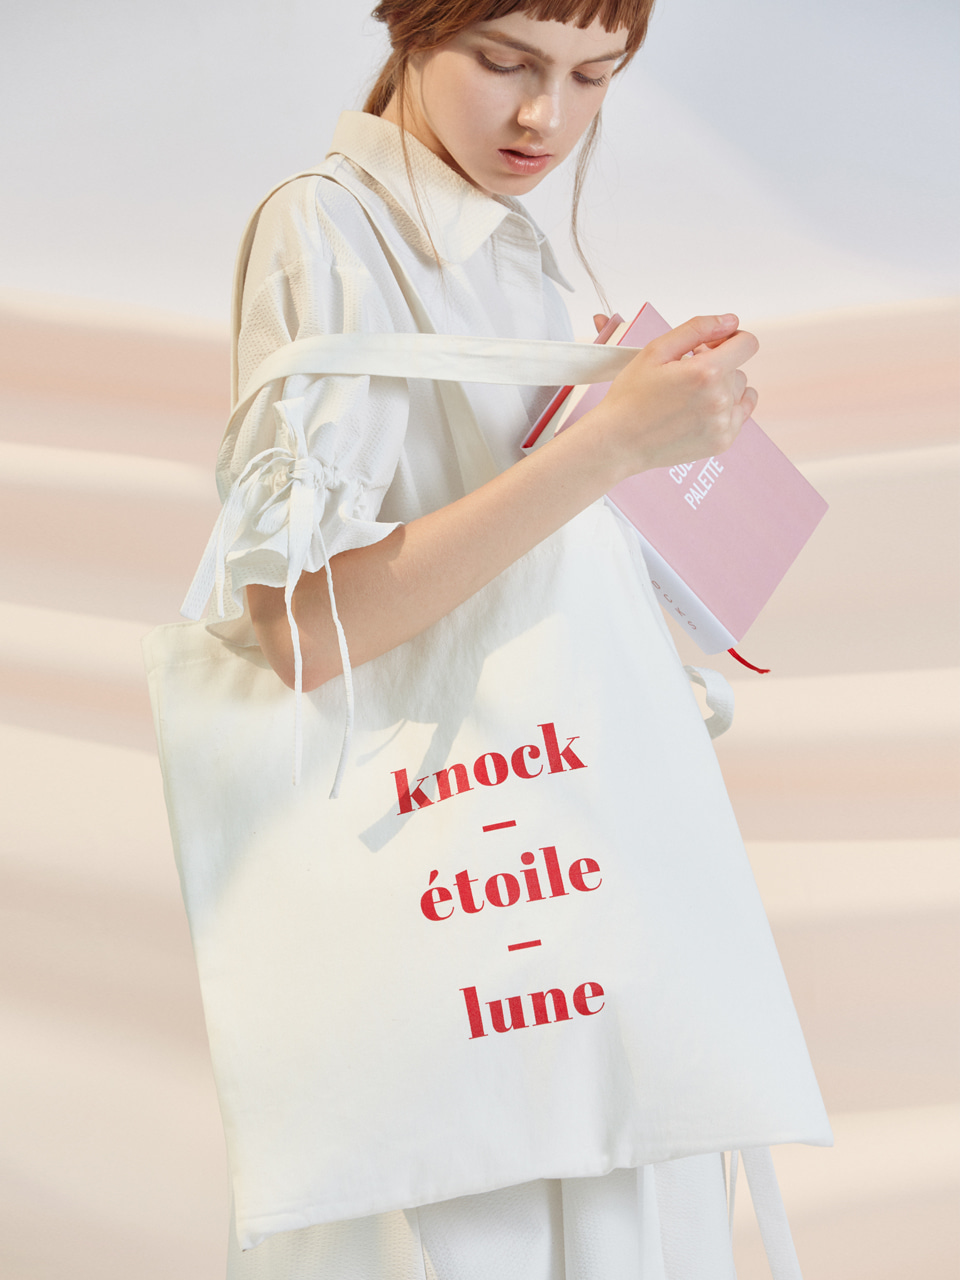 etoile lune ecobag_WH